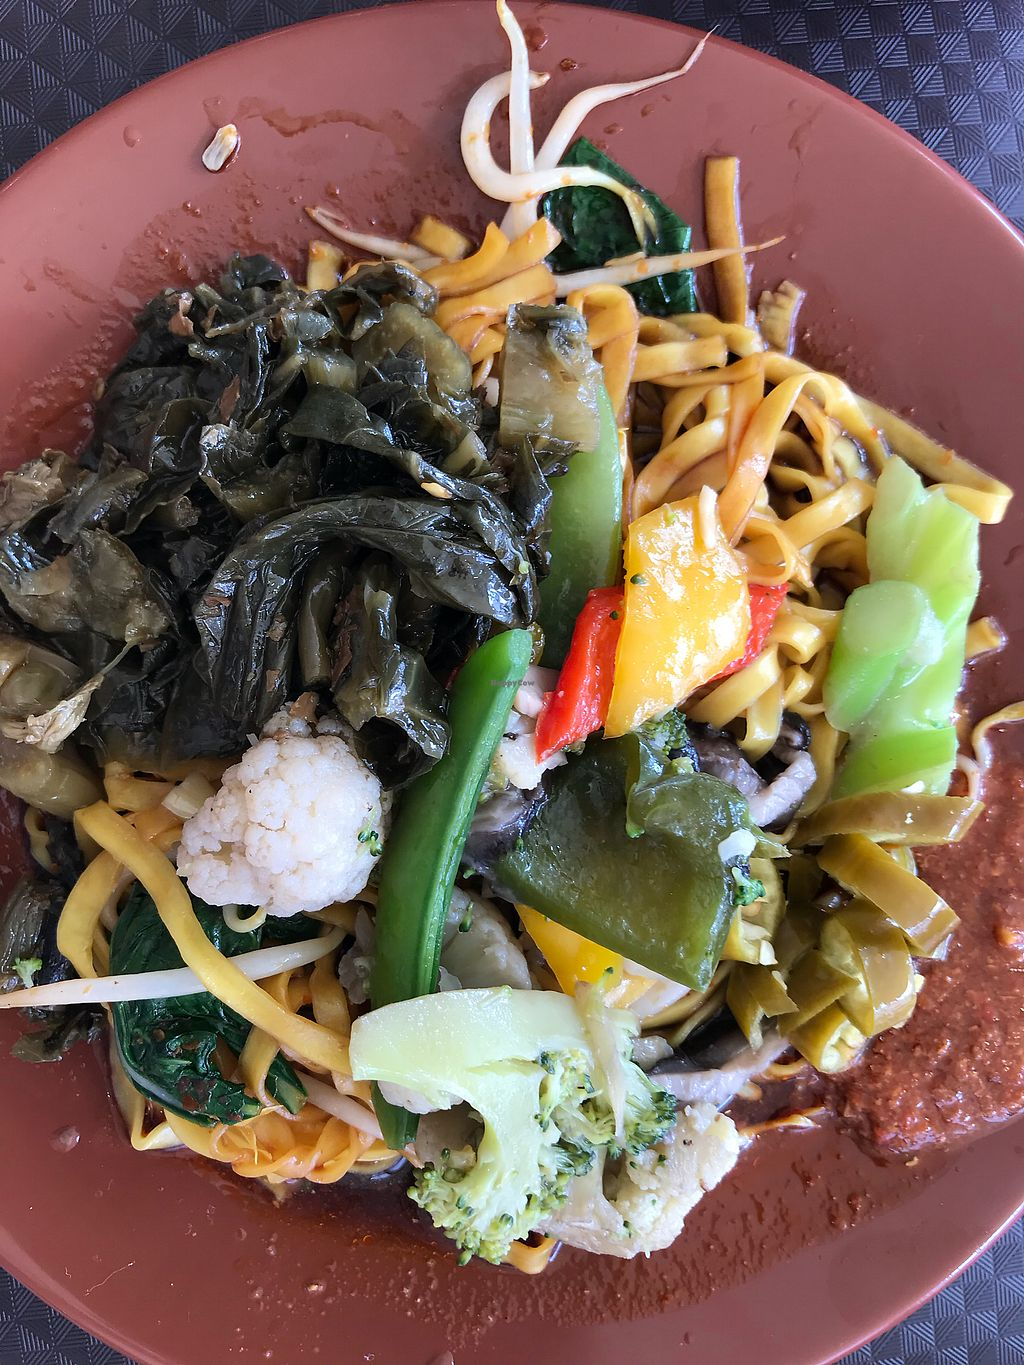 "Photo of Soon Lee Vegetarian Food  by <a href=""/members/profile/David.Yu"">David.Yu</a> <br/>Dry noodle. $3.  <br/> March 2, 2018  - <a href='/contact/abuse/image/26444/365588'>Report</a>"